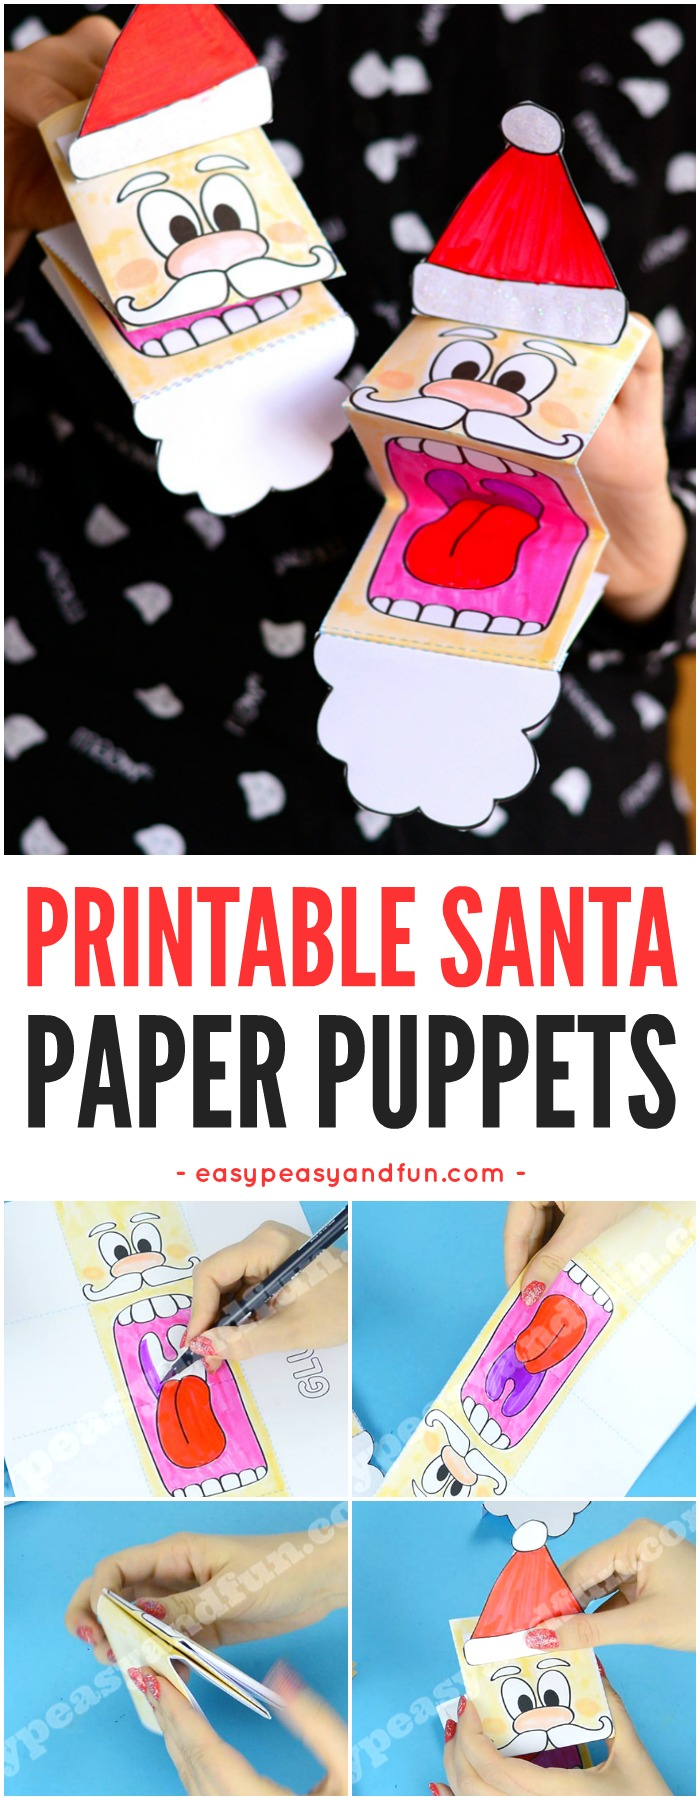 Printable Santa Paper Puppet - Easy Peasy and Fun